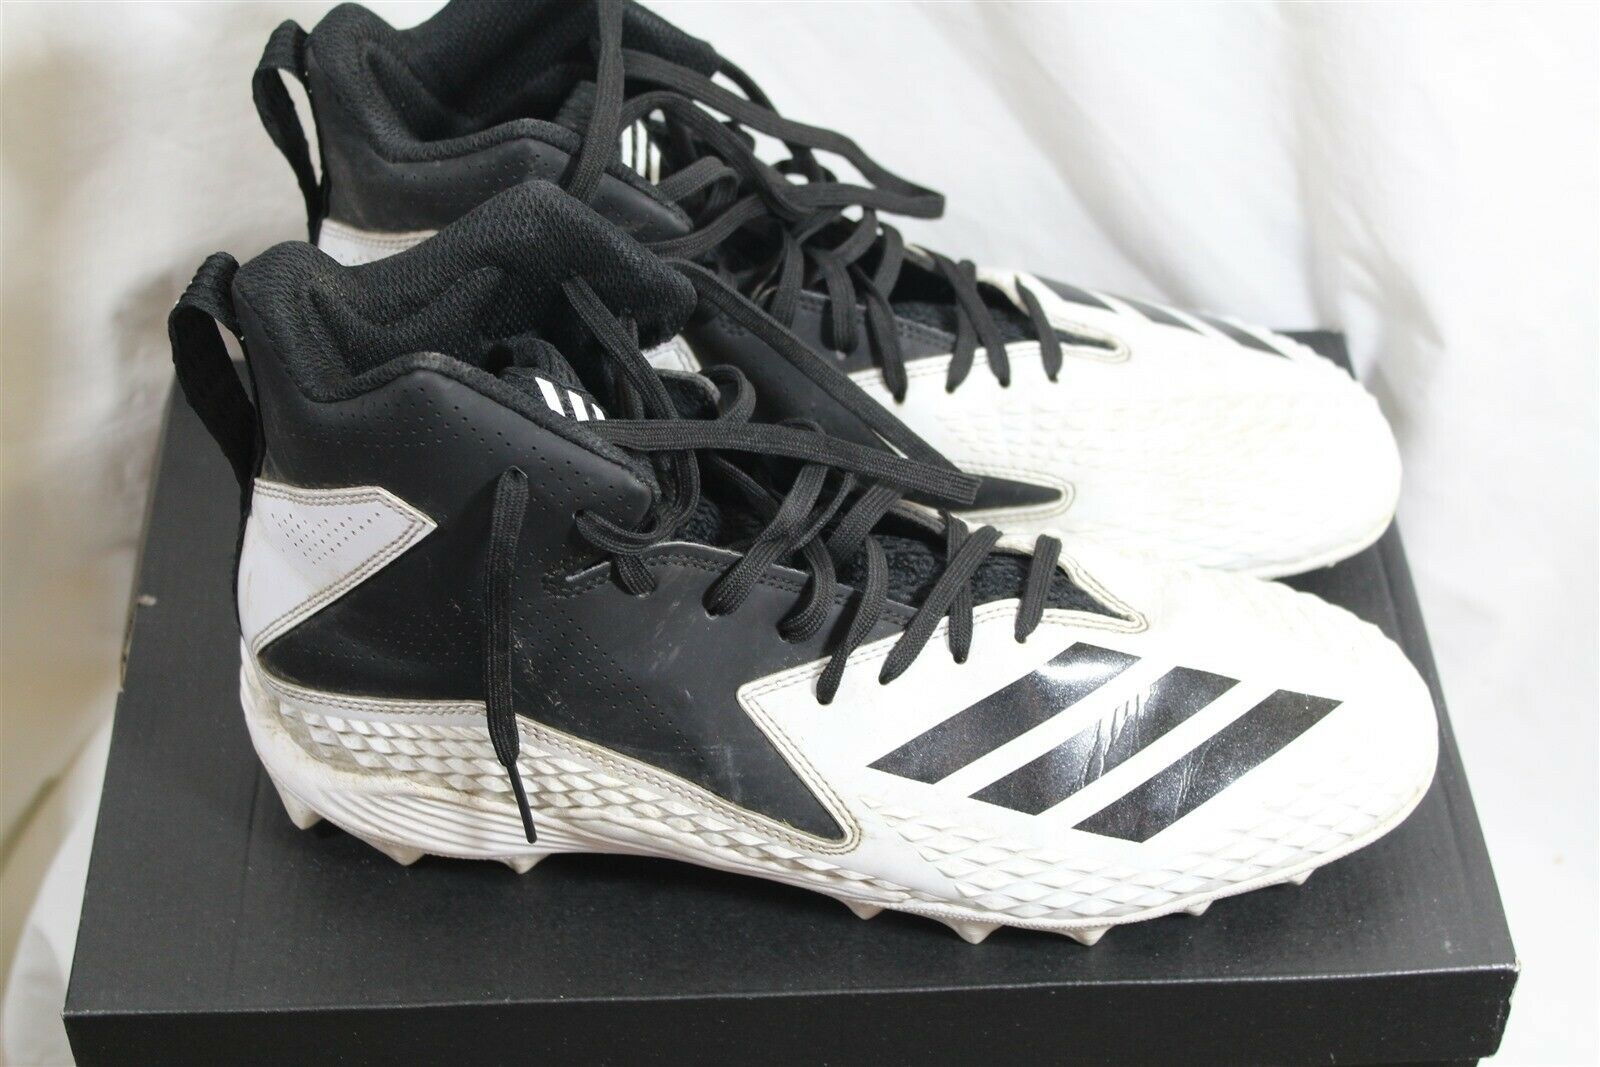 5a6d67ec6 Adidas Freak MD white 10.5 D